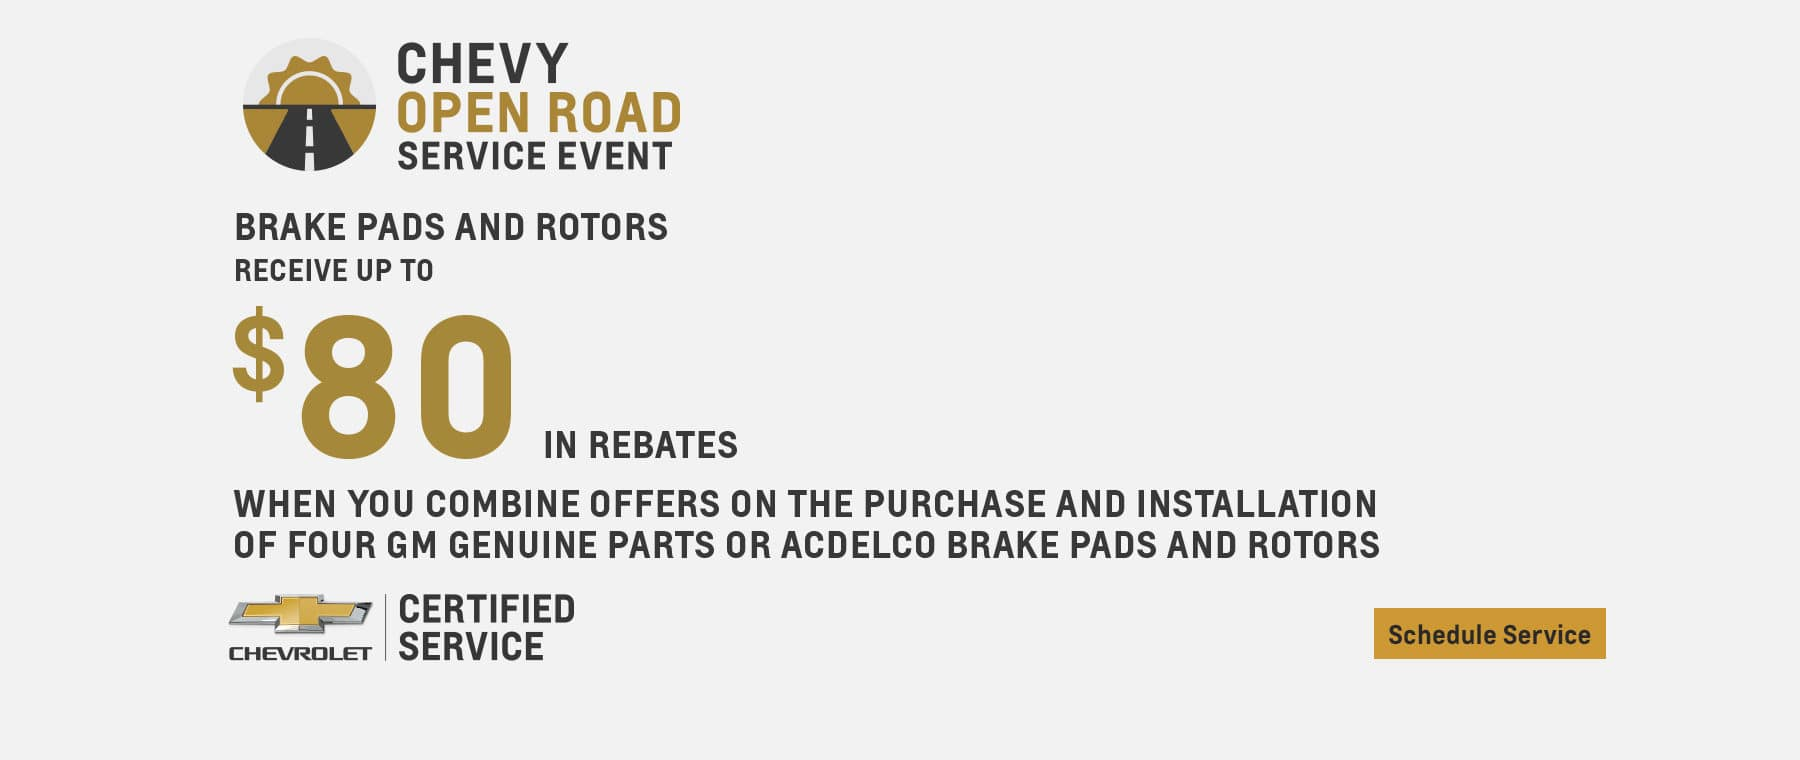 Chevy Open Road Service Event Brake Pads and Rotor Offer